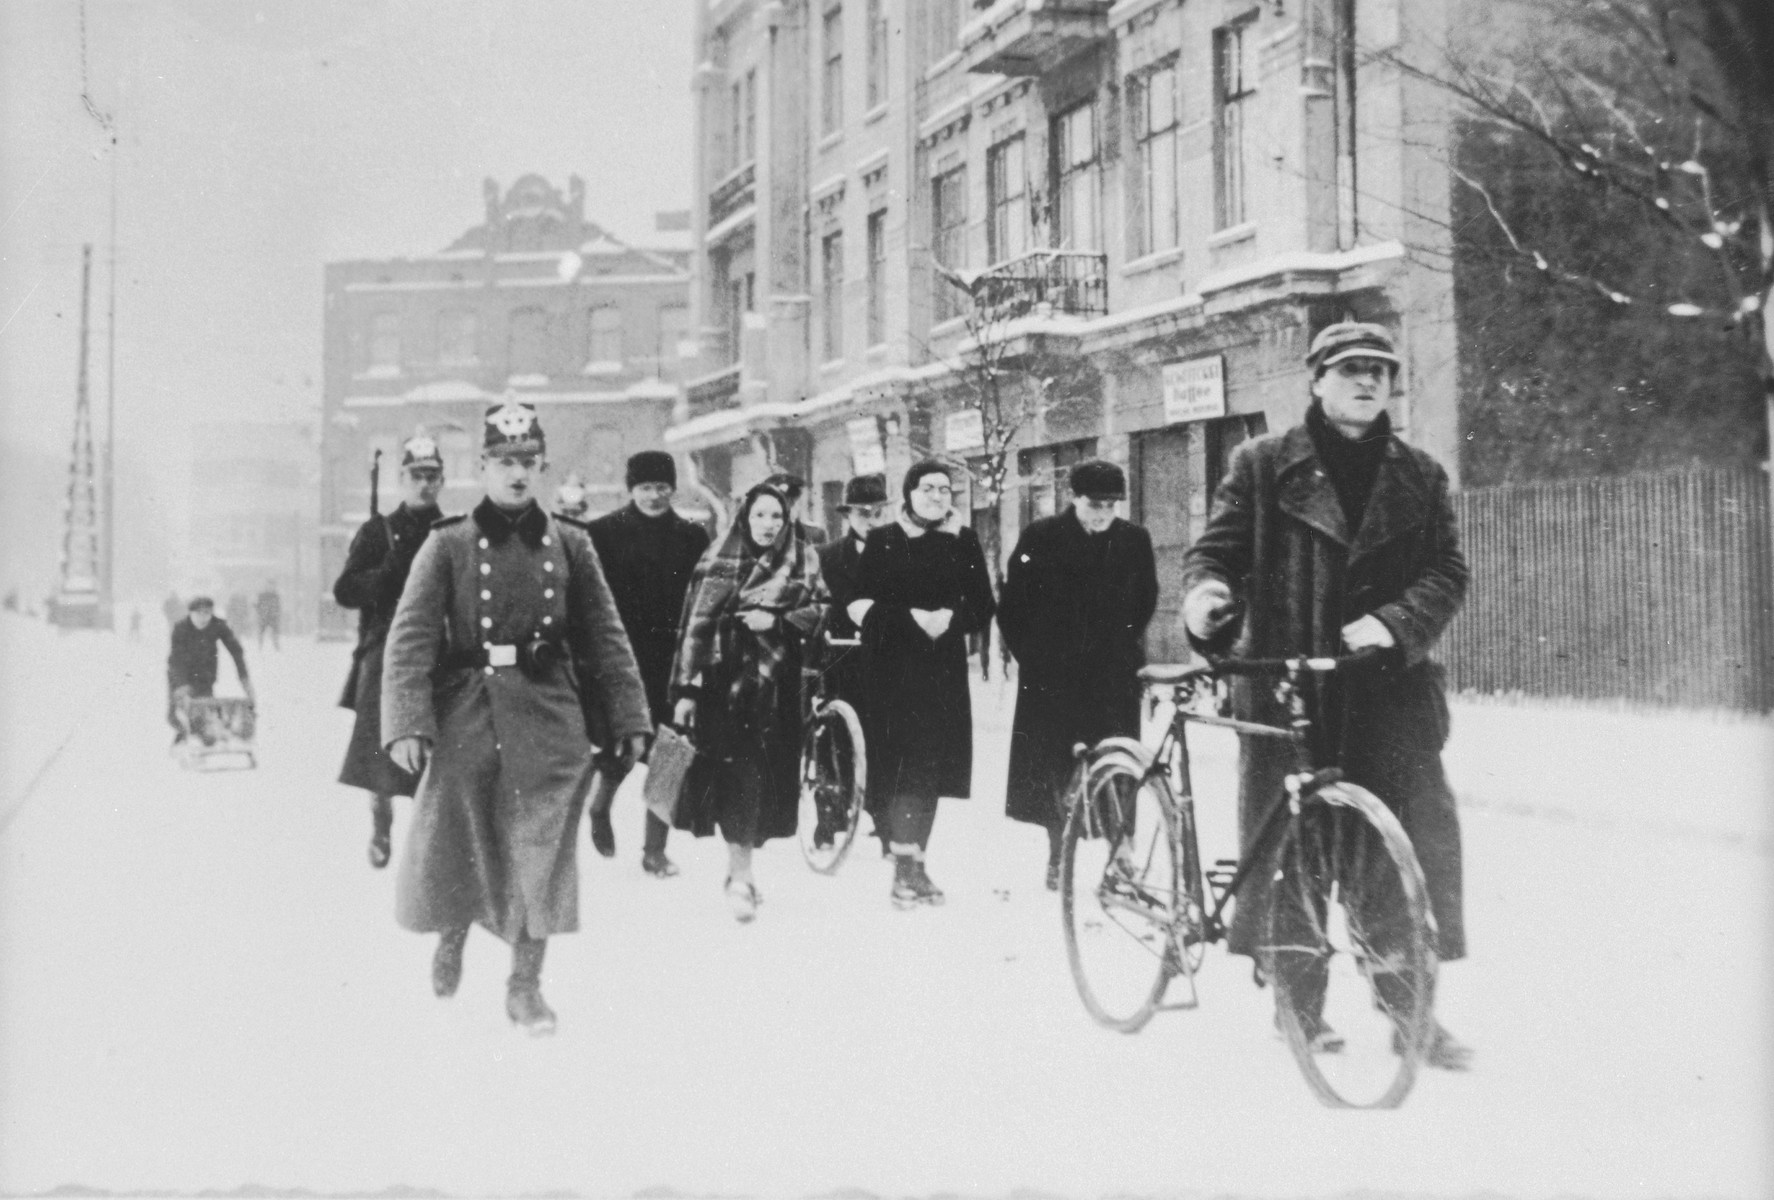 German police escort a group of Jews along a snow covered street during a deportation action in Zawiercie.